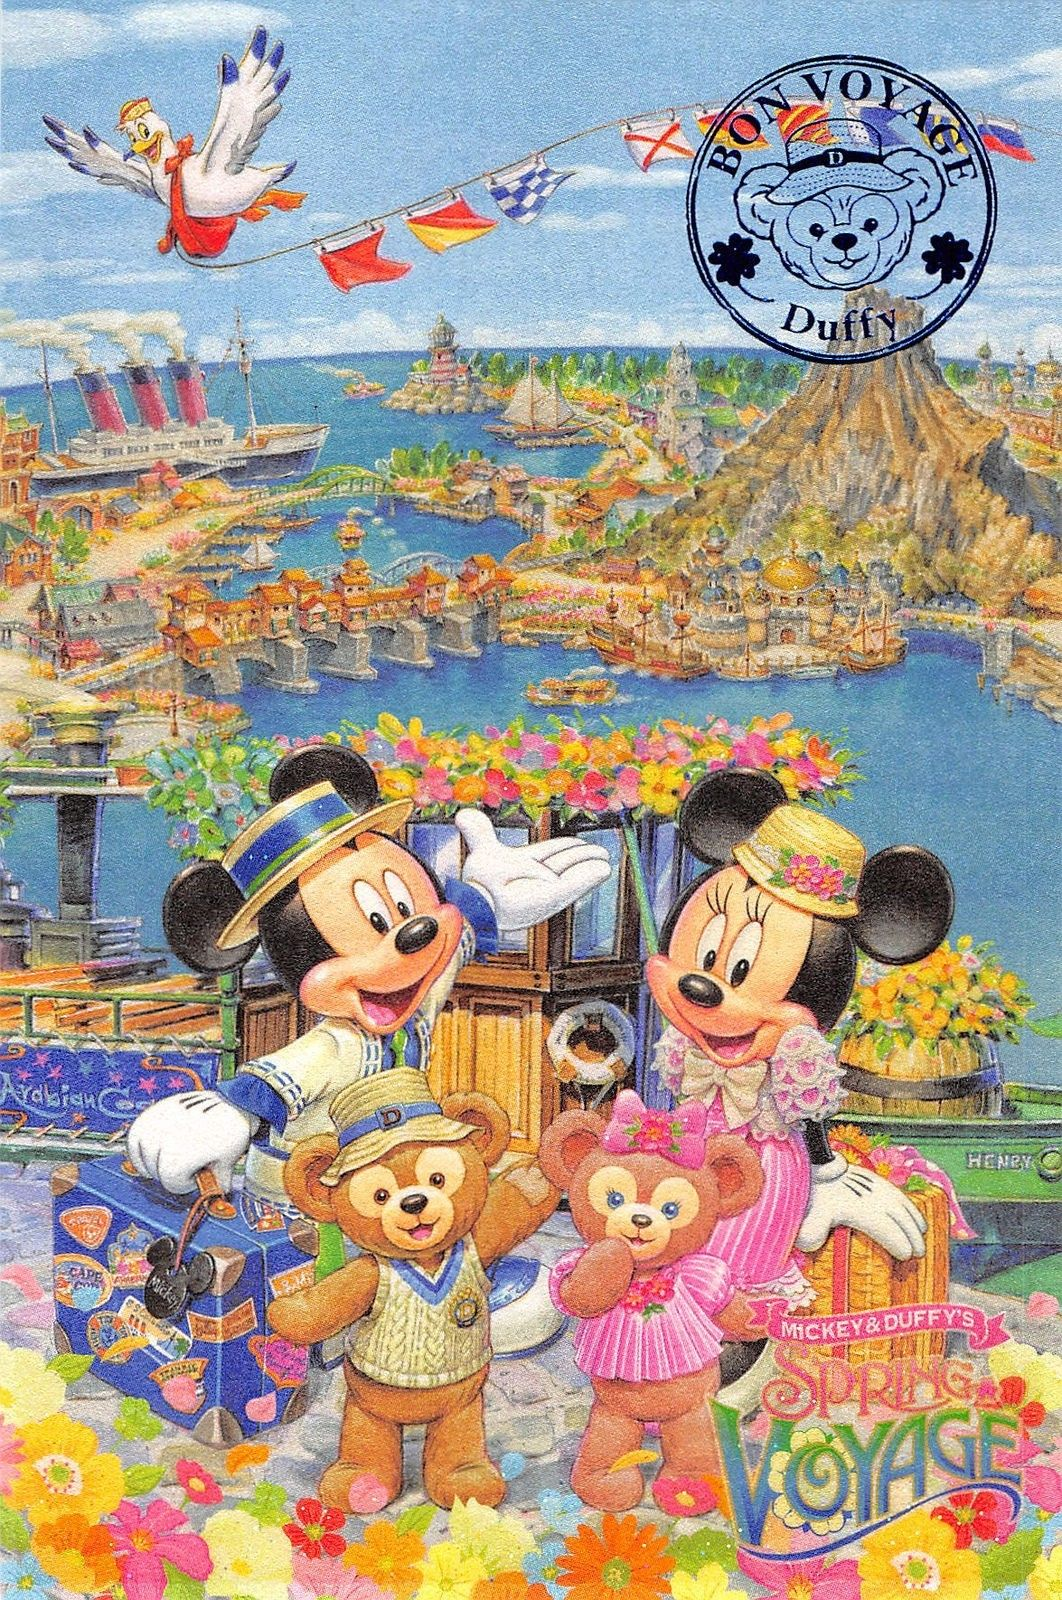 Mickey And Duffy S Spring Voyage ダッフィー 壁紙 ディズニー